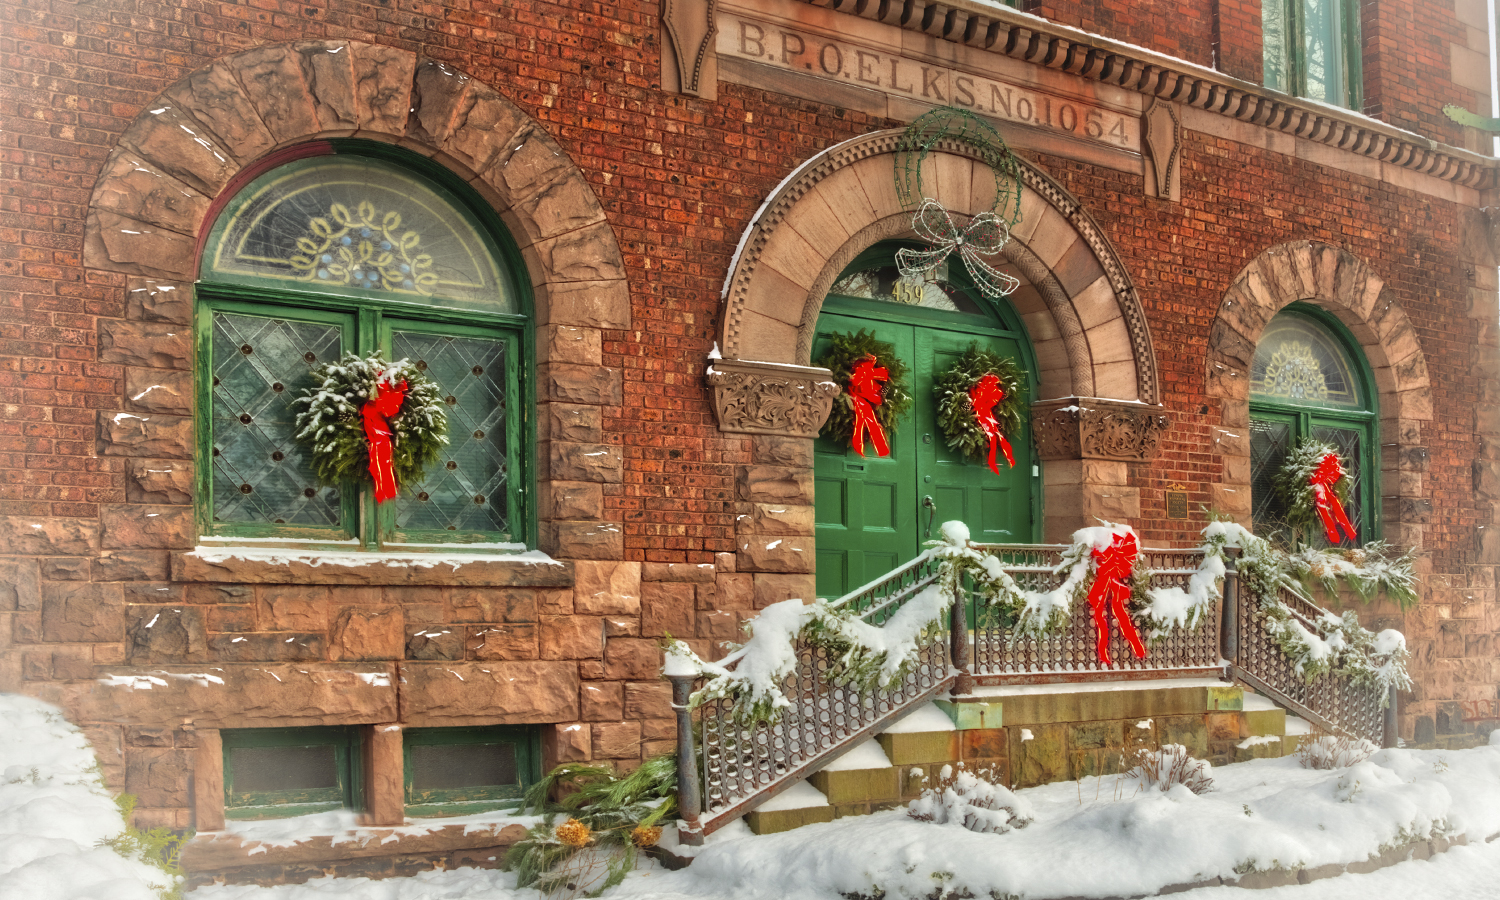 The old Collins Music Hall building is decorated for the season on historic South Main Street near campus.